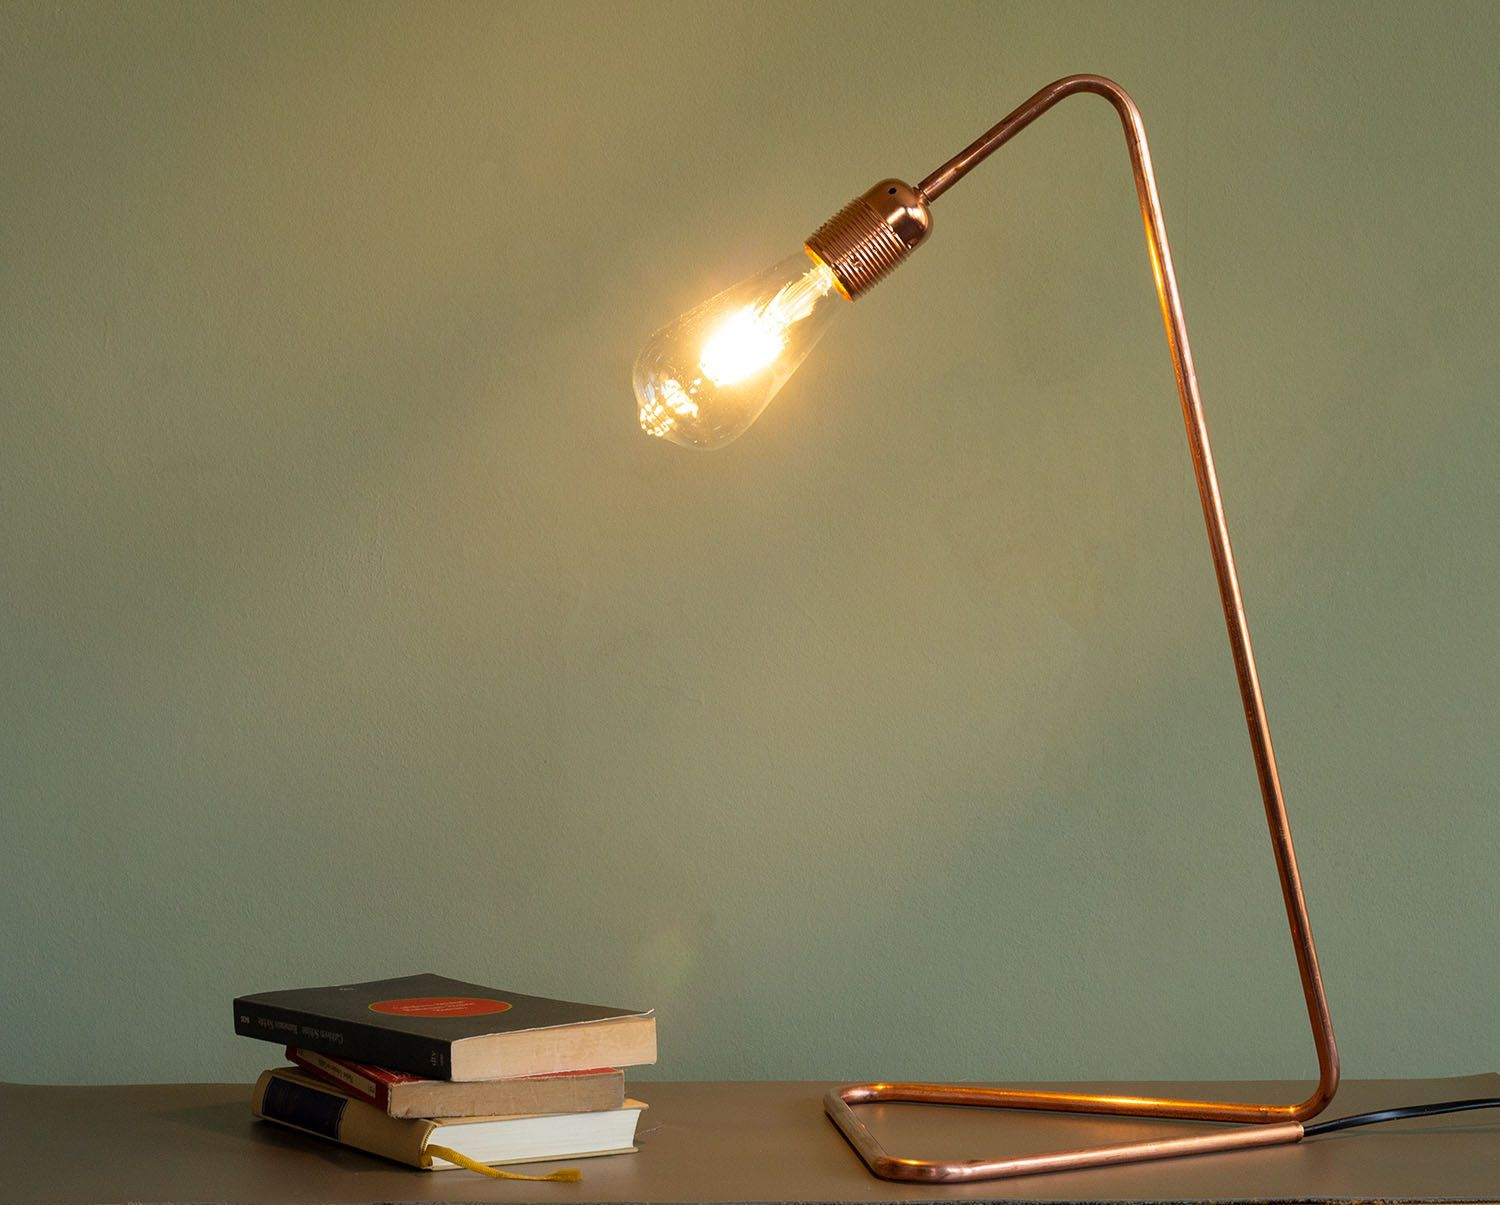 Desk Lamp Copper Tube Bent In Industrial Design Without Umbrella Lamp Desk Lamp Retro Light Bulbs